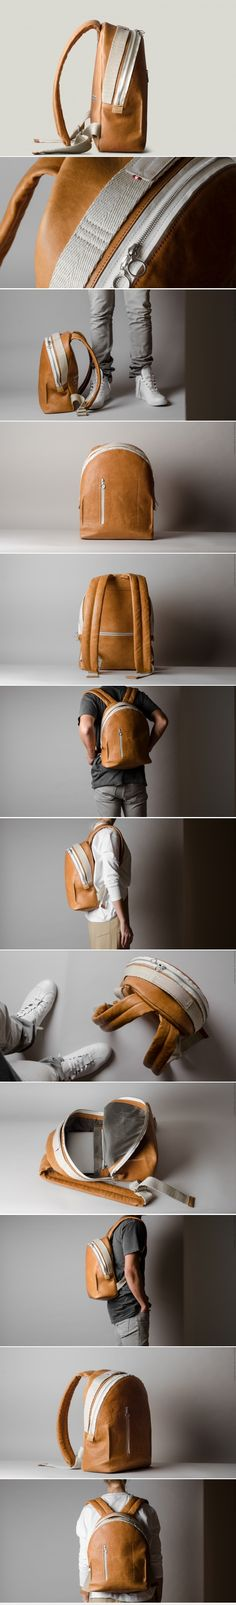 A BACKPACK - any backpack, for style more than function :)